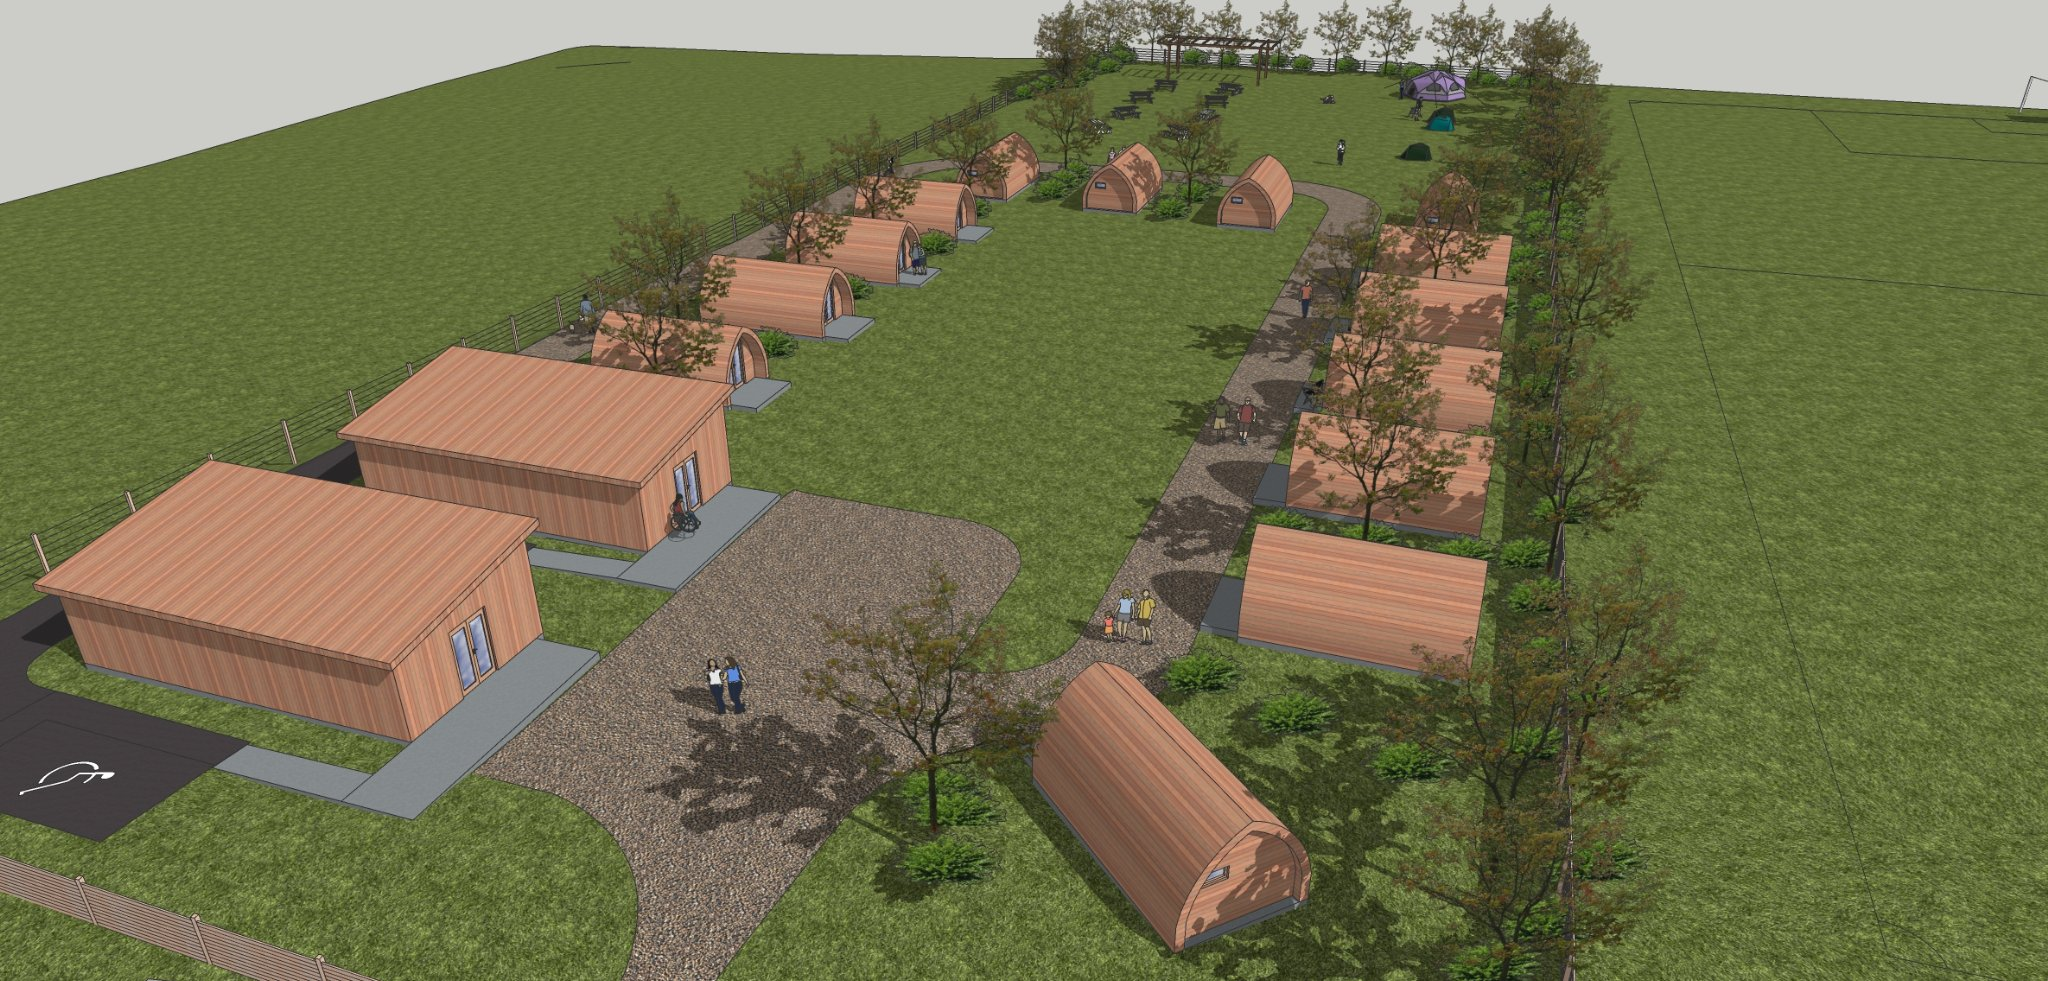 Recreational trust plans holiday park in Unst